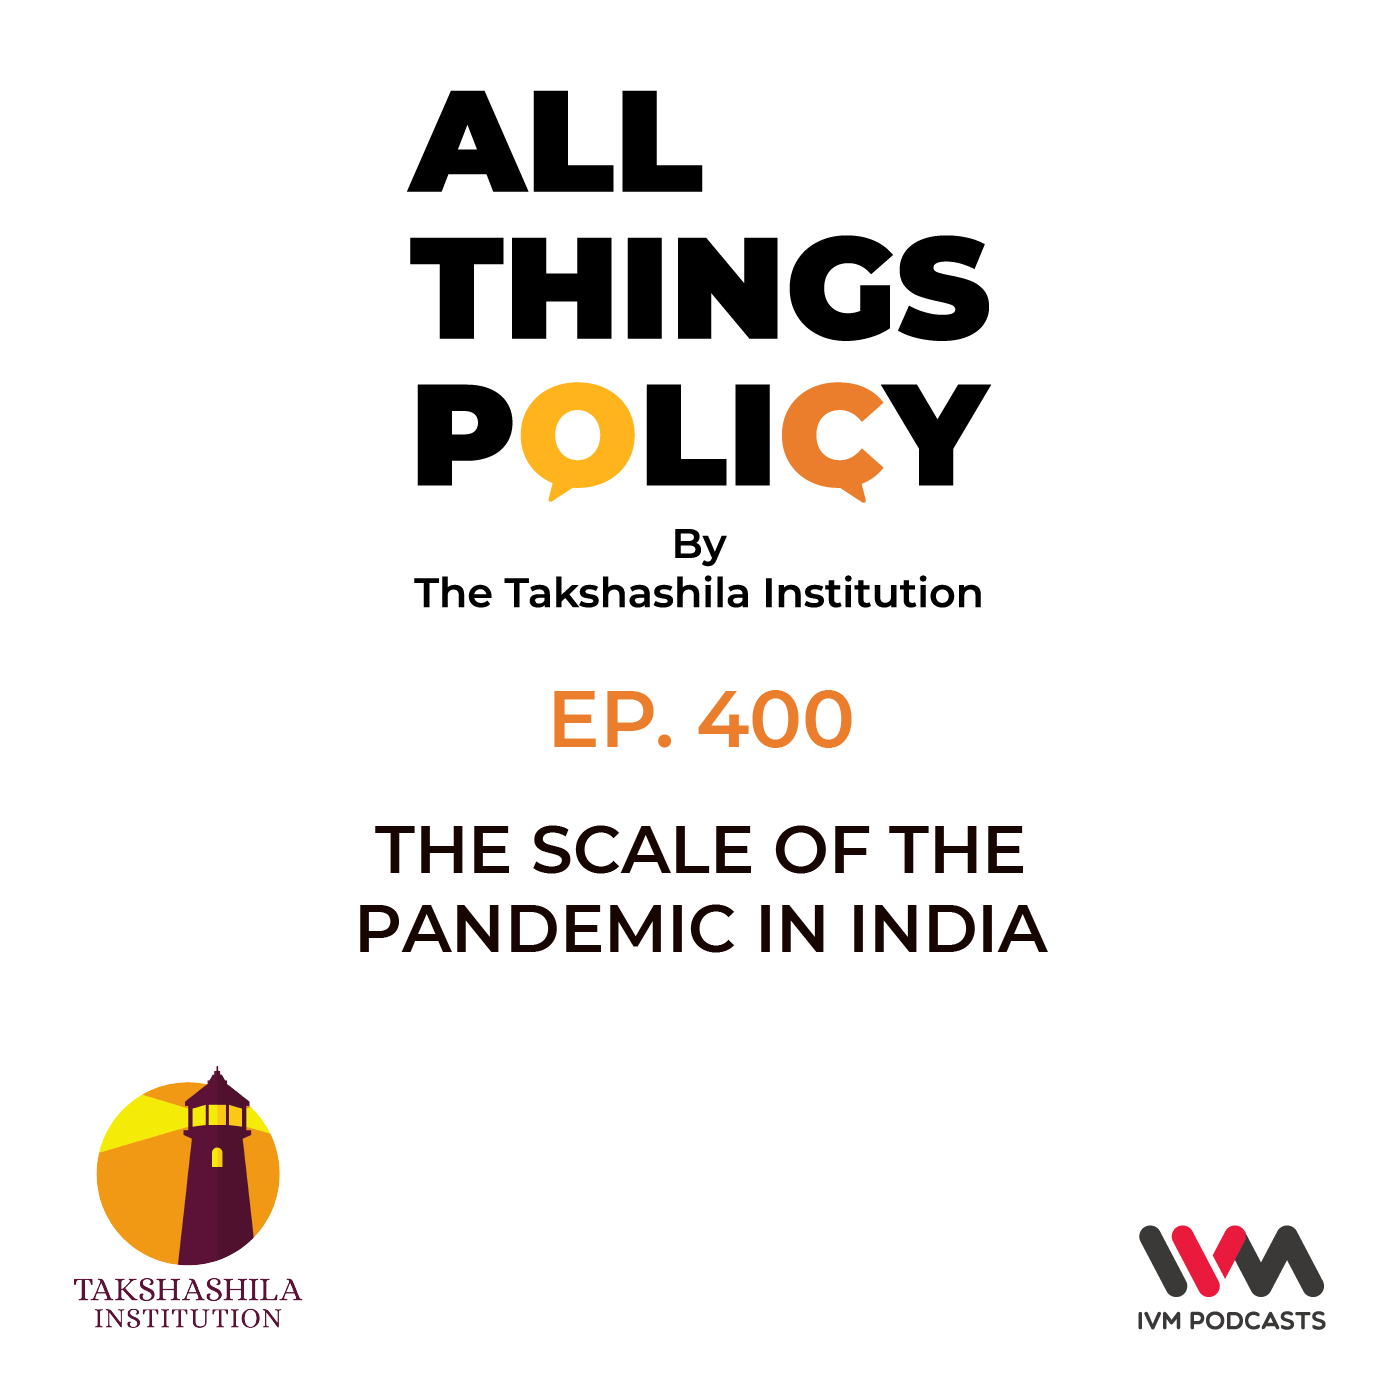 Ep. 400: The Scale of the Pandemic in India